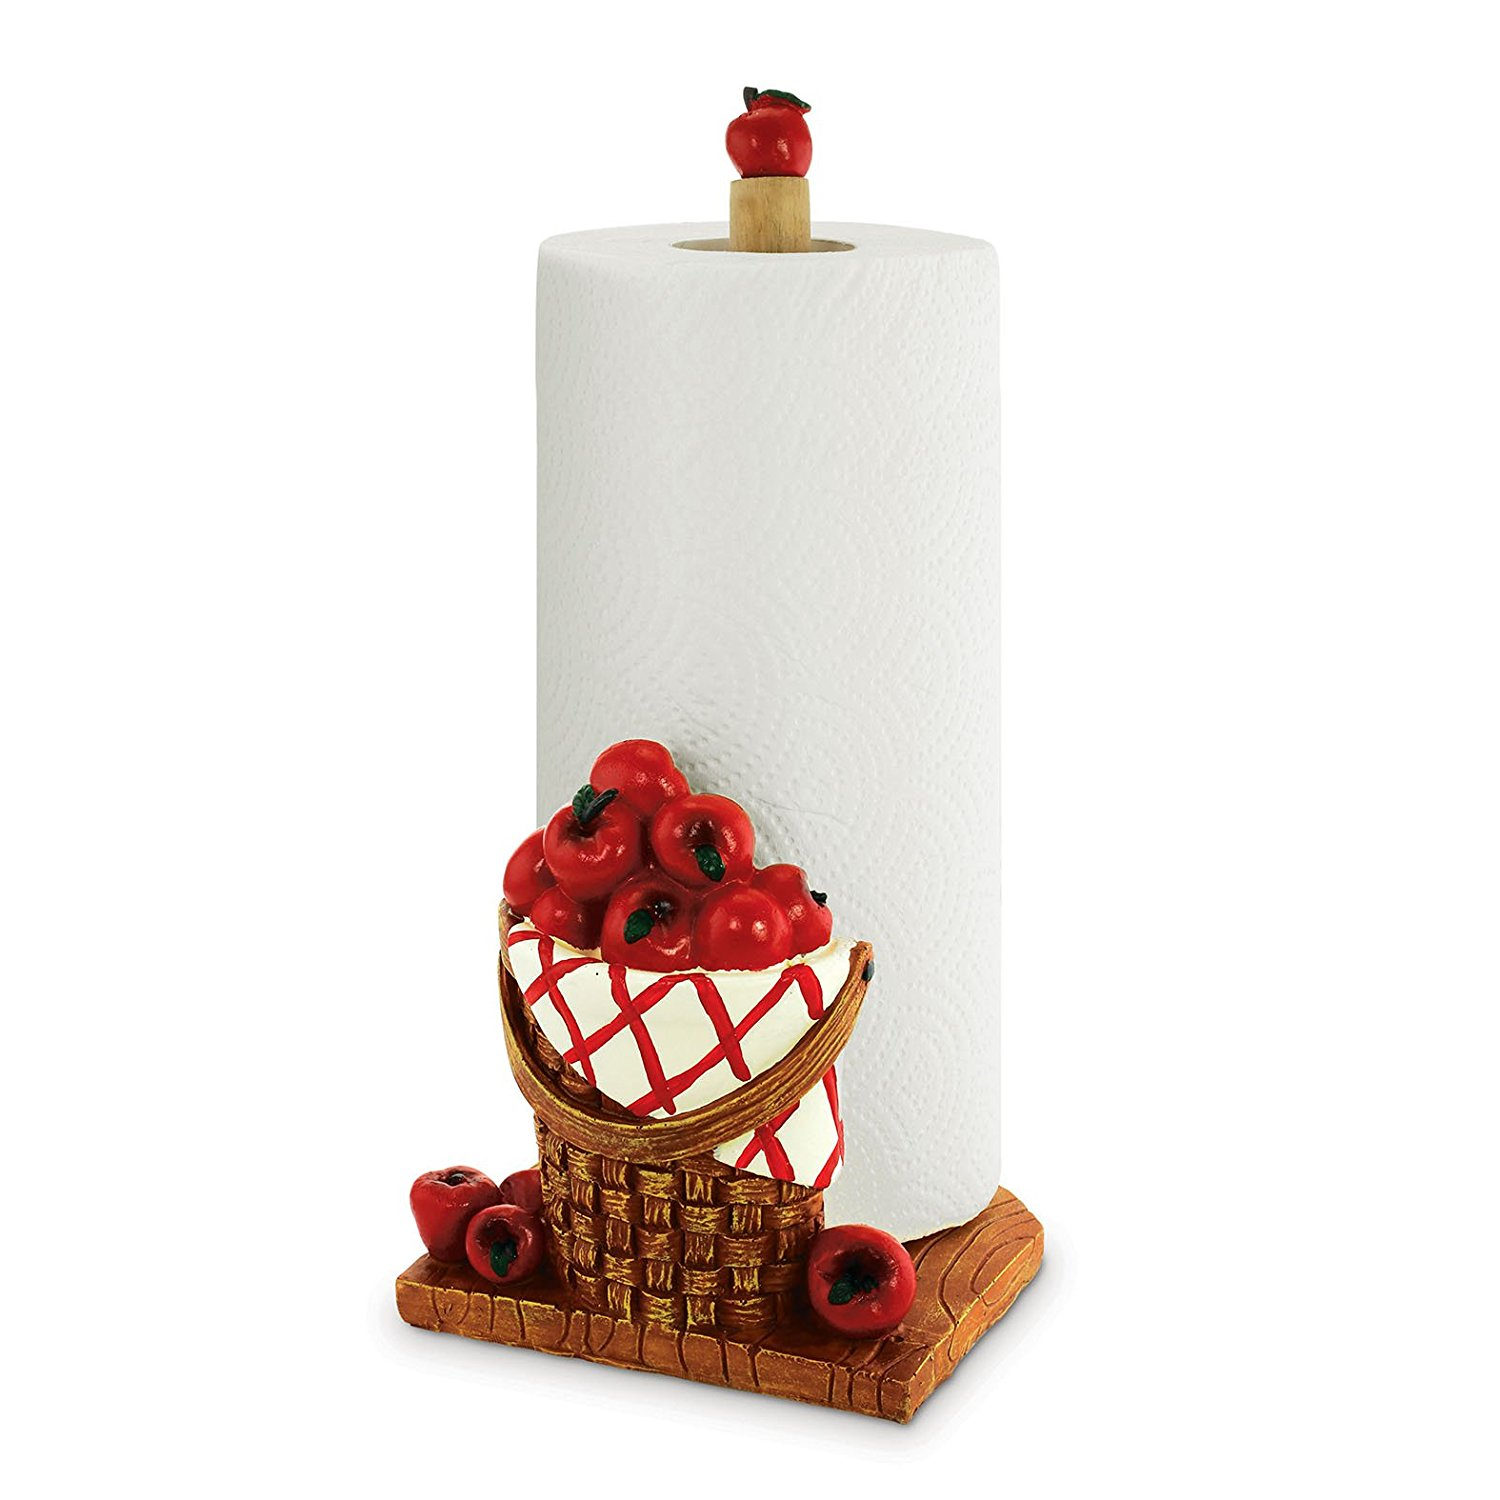 Farmhouse Hand Towel Holder Apple Paper Towel Holder Kovot